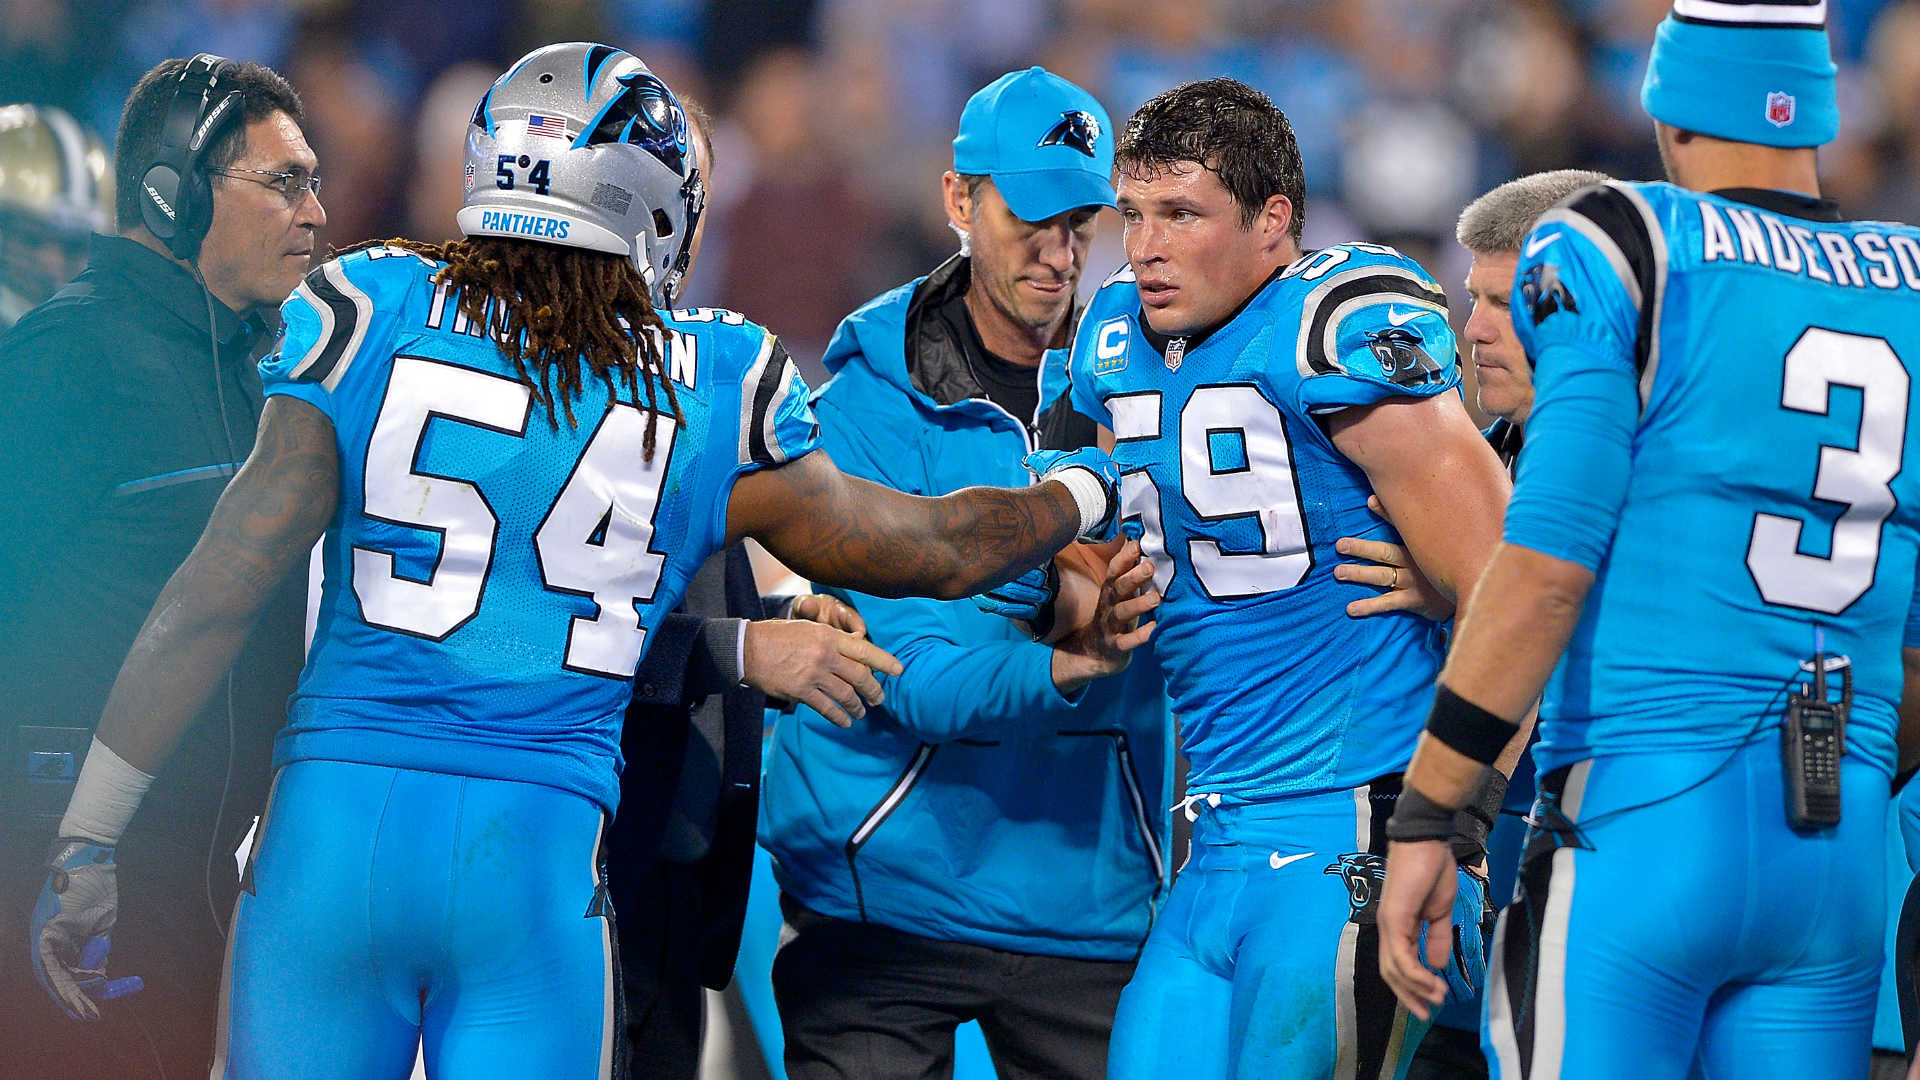 Panthers Luke Kuechly Dodged Concussion Vs Eagles Report Says